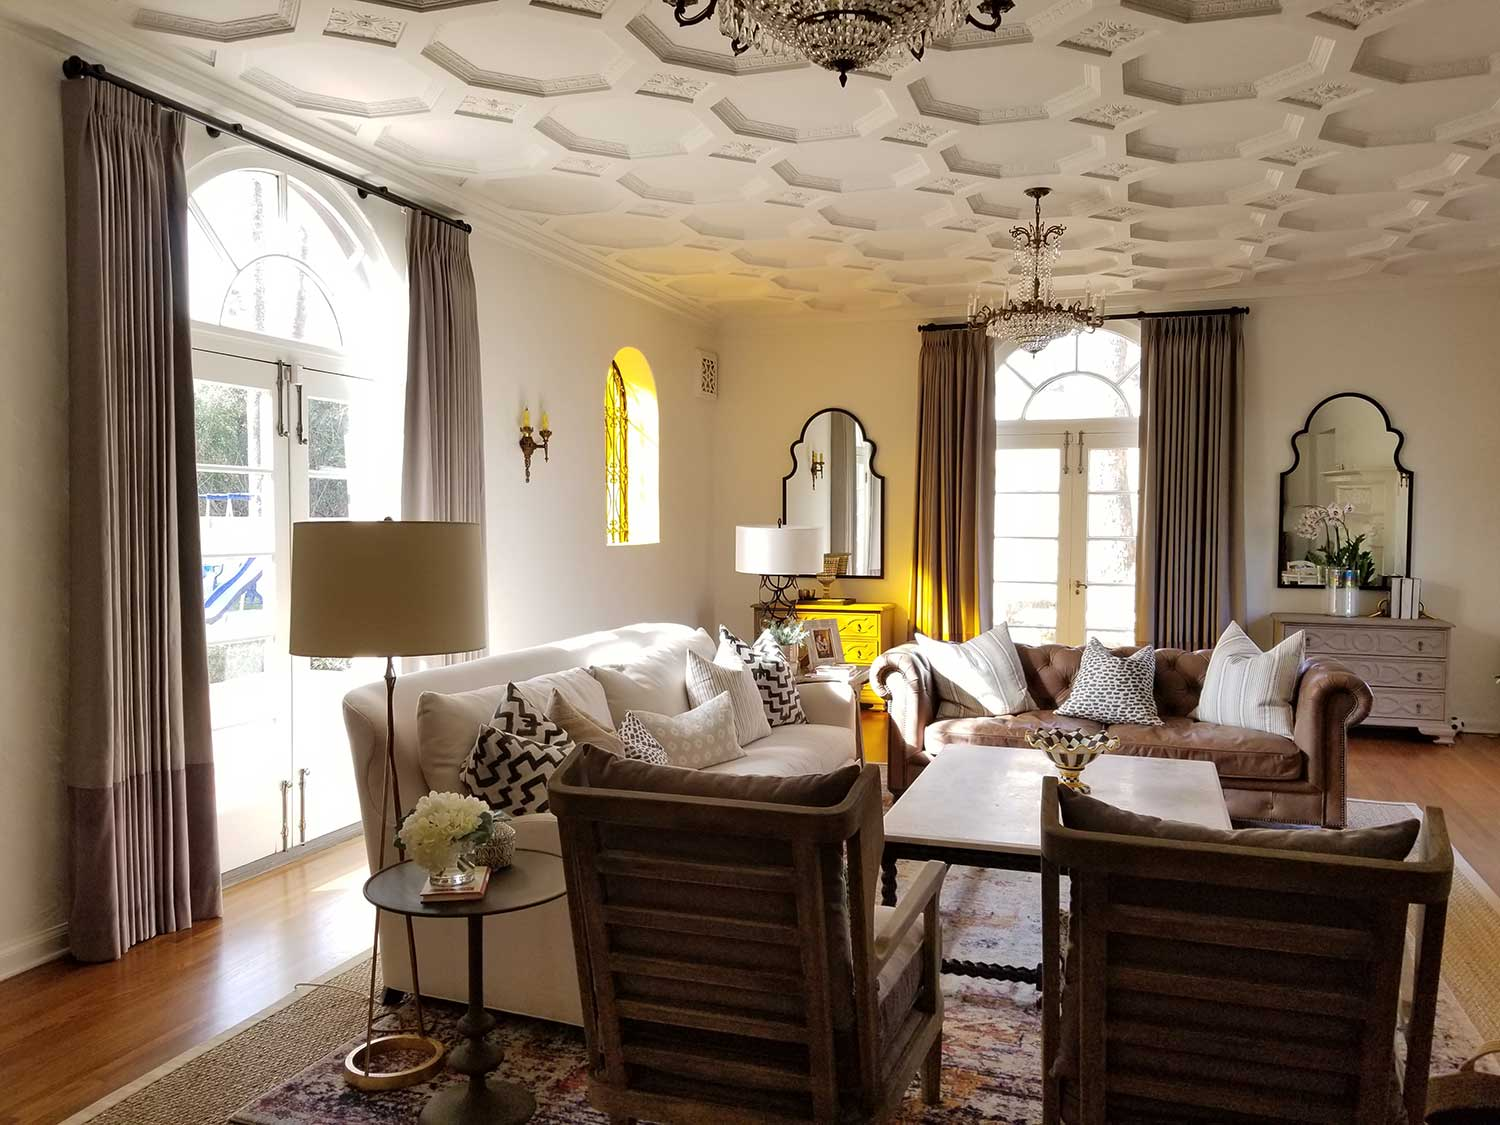 A living room with a honey comb patterned ceiling